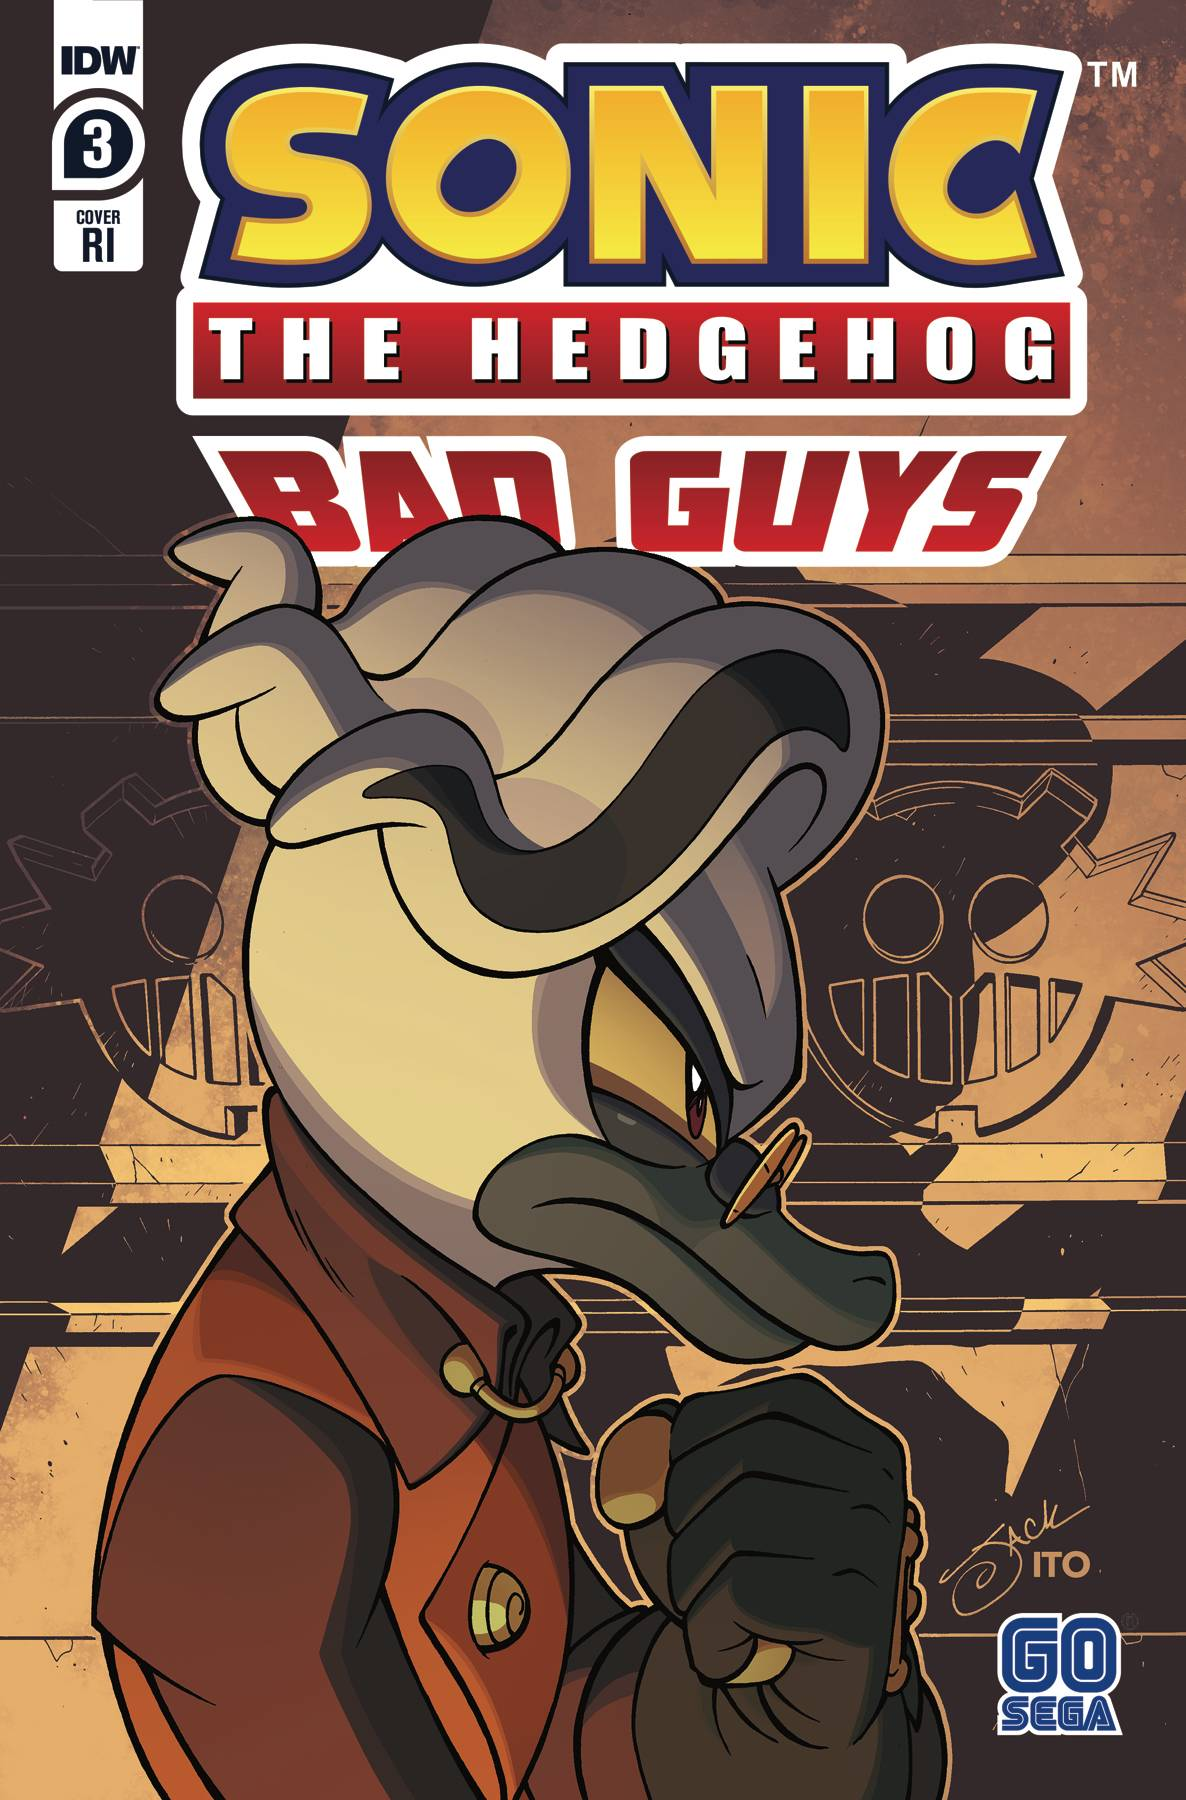 SONIC THE HEDGEHOG BAD GUYS #3 (OF 4) 10 COPY INCV LAWRENCE